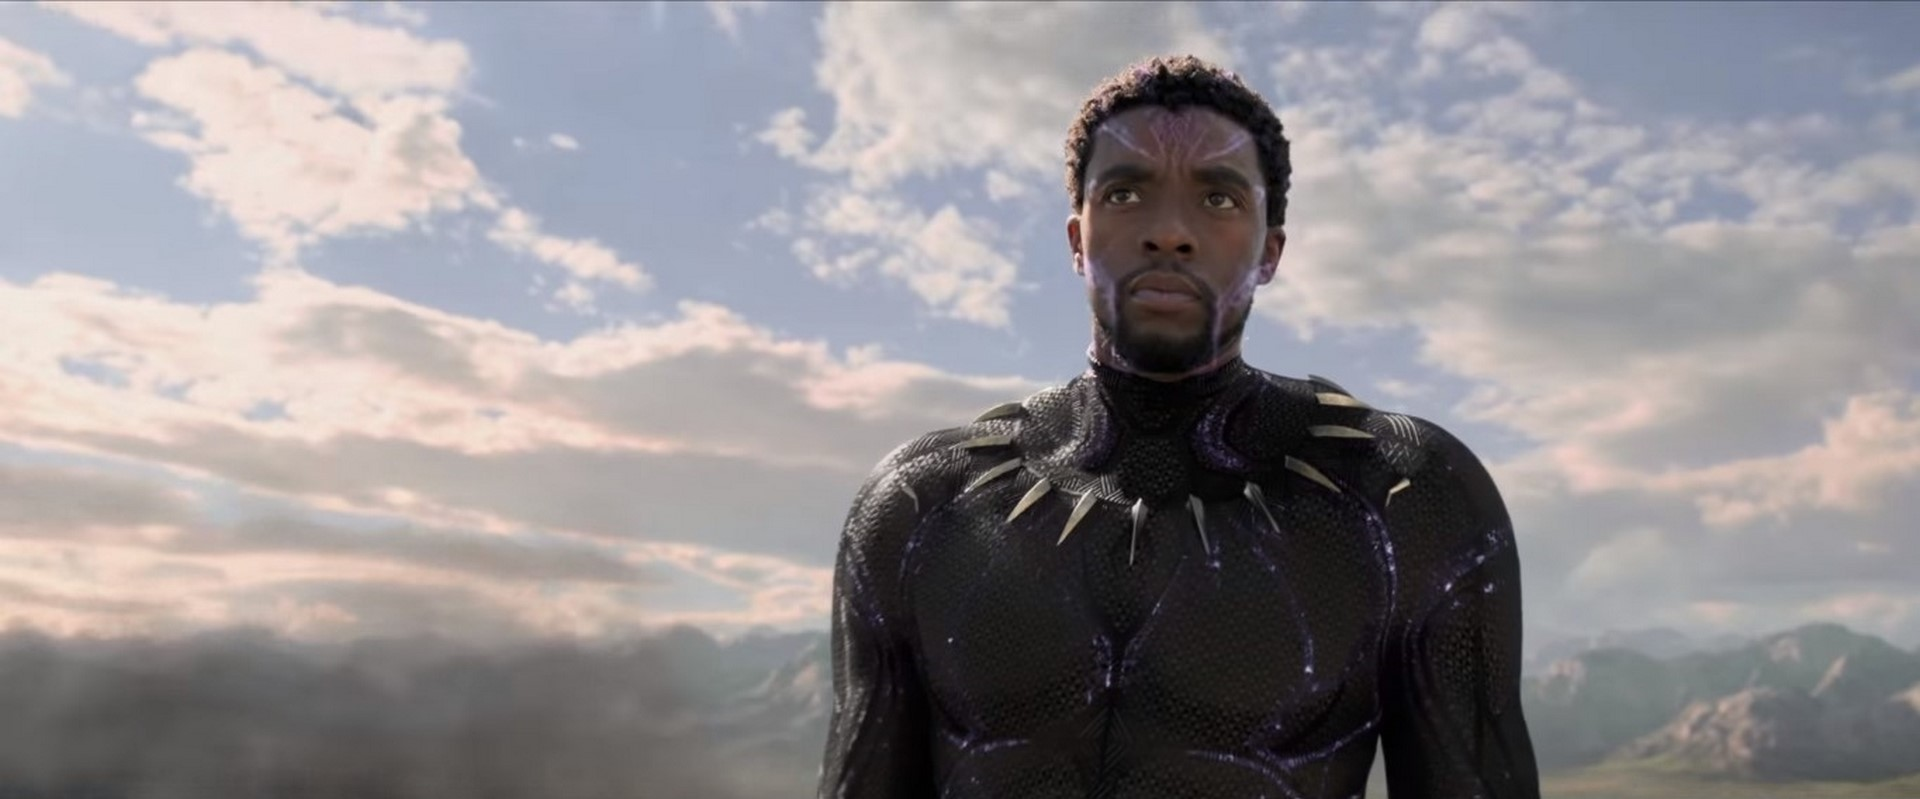 Black Panther – Home Entertainment Review by Mr. DAPs